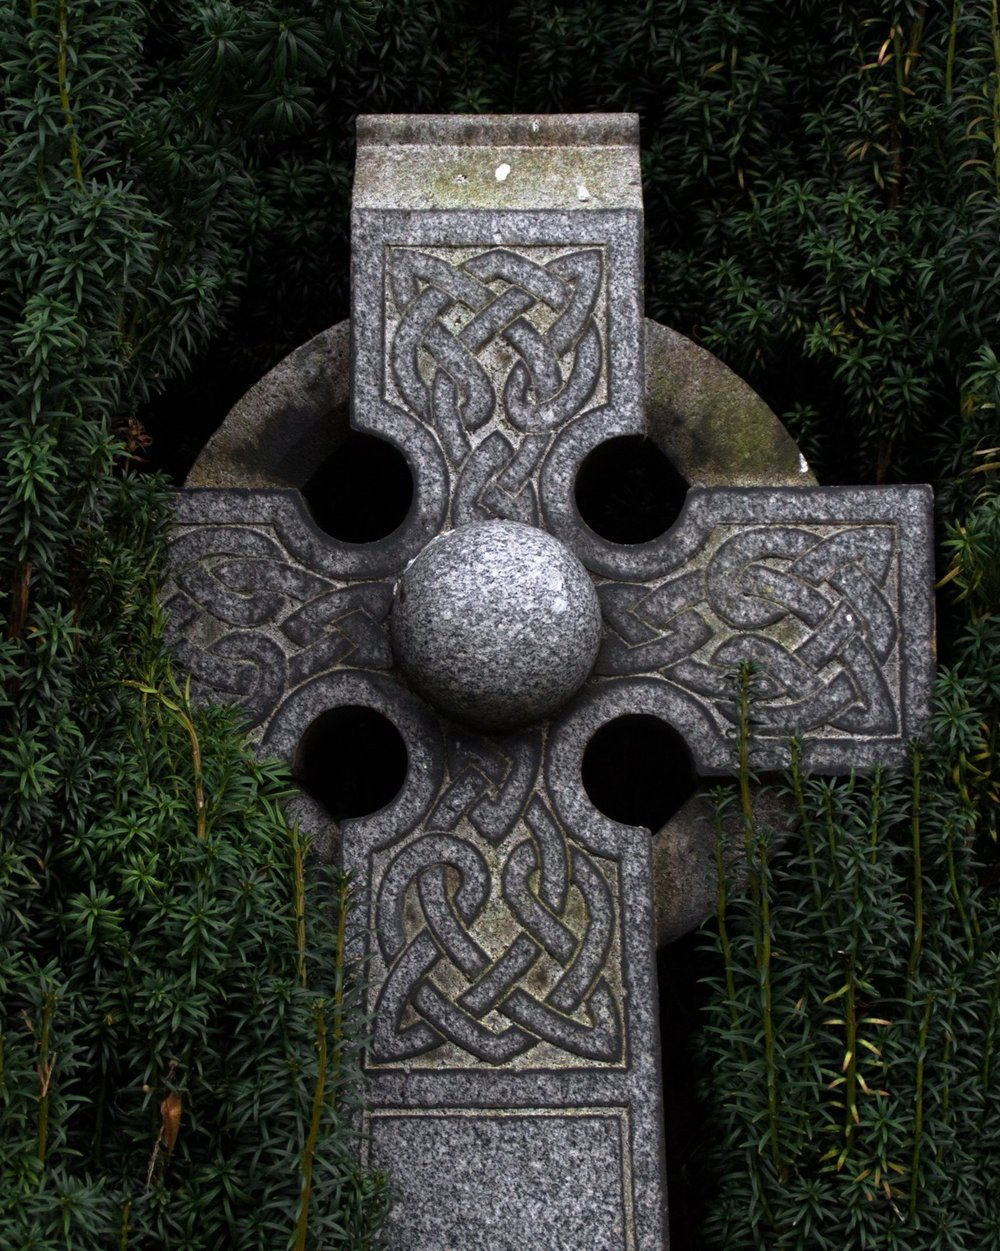 Celtic Cross - · This is a symbol of faith for all Celts. It appears as a decorative element on large standing stone crosses and in the Book of Kells. This symbol combines the traditional Christian cross with a ring through the cross's intersection. It is also referred to as the High Cross, the Irish Cross and the Cross of Iona.